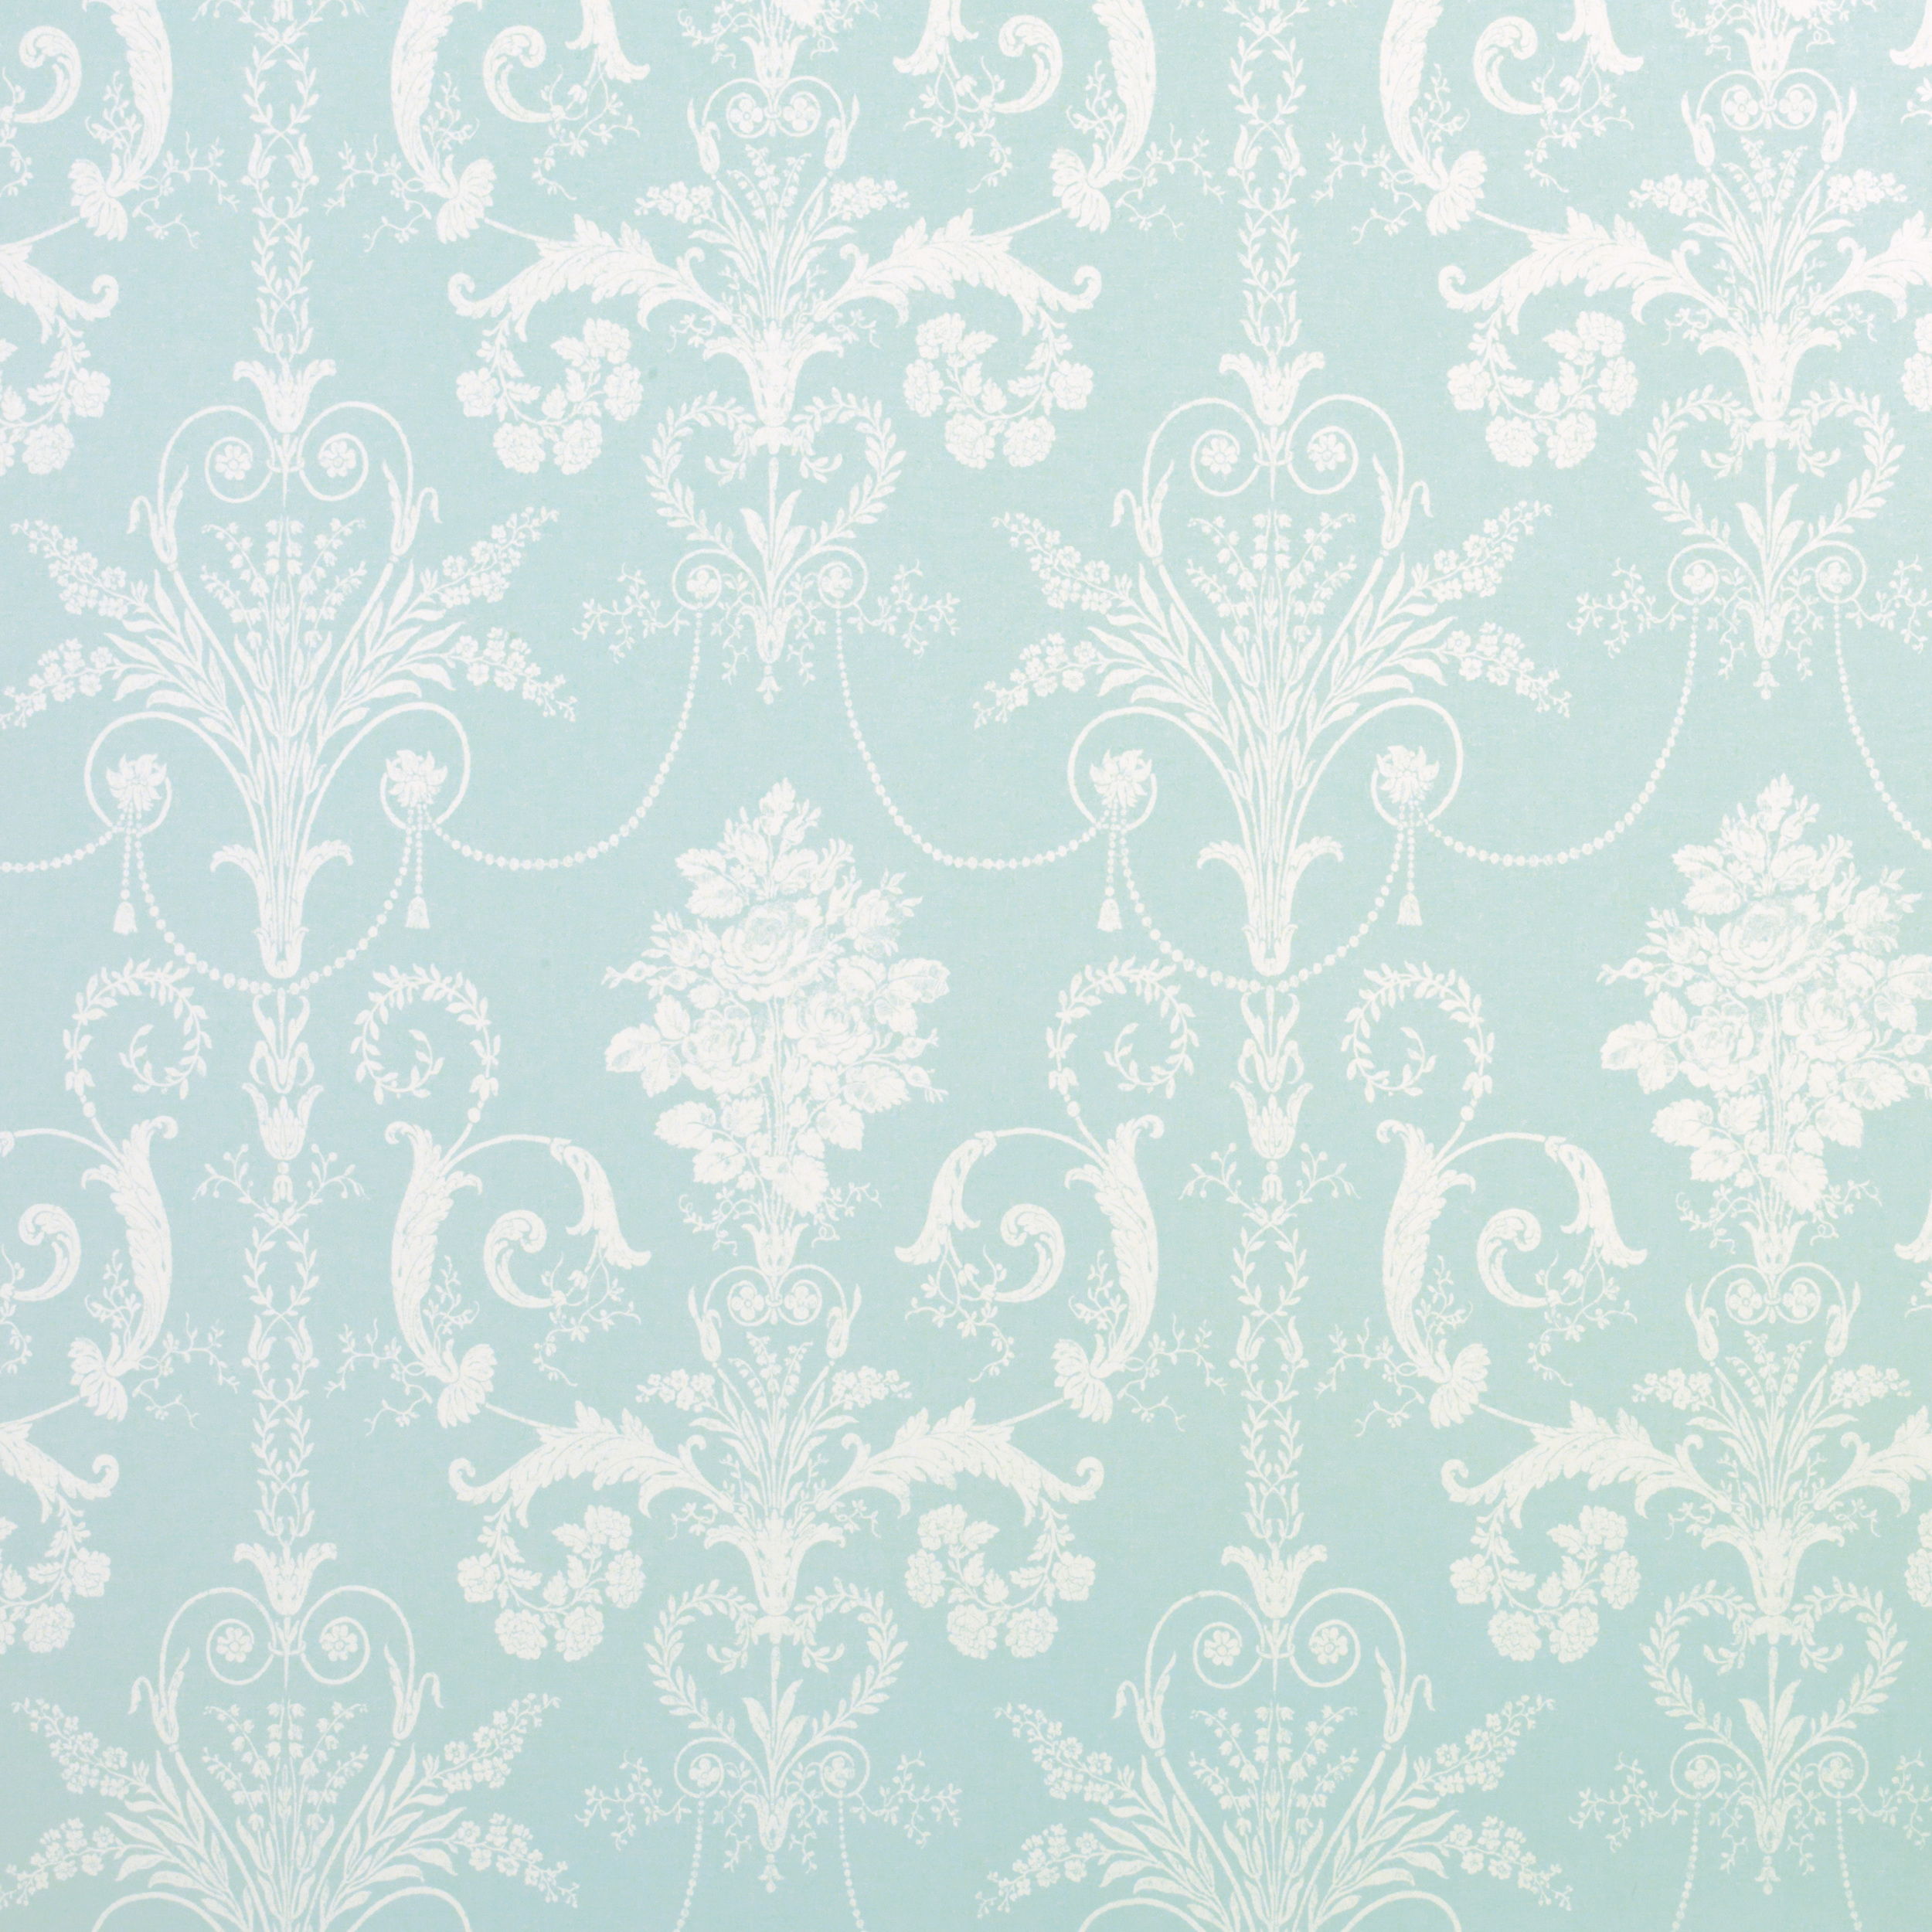 Duck egg blue wallpaper wallpapersafari for Blue wallpaper designs